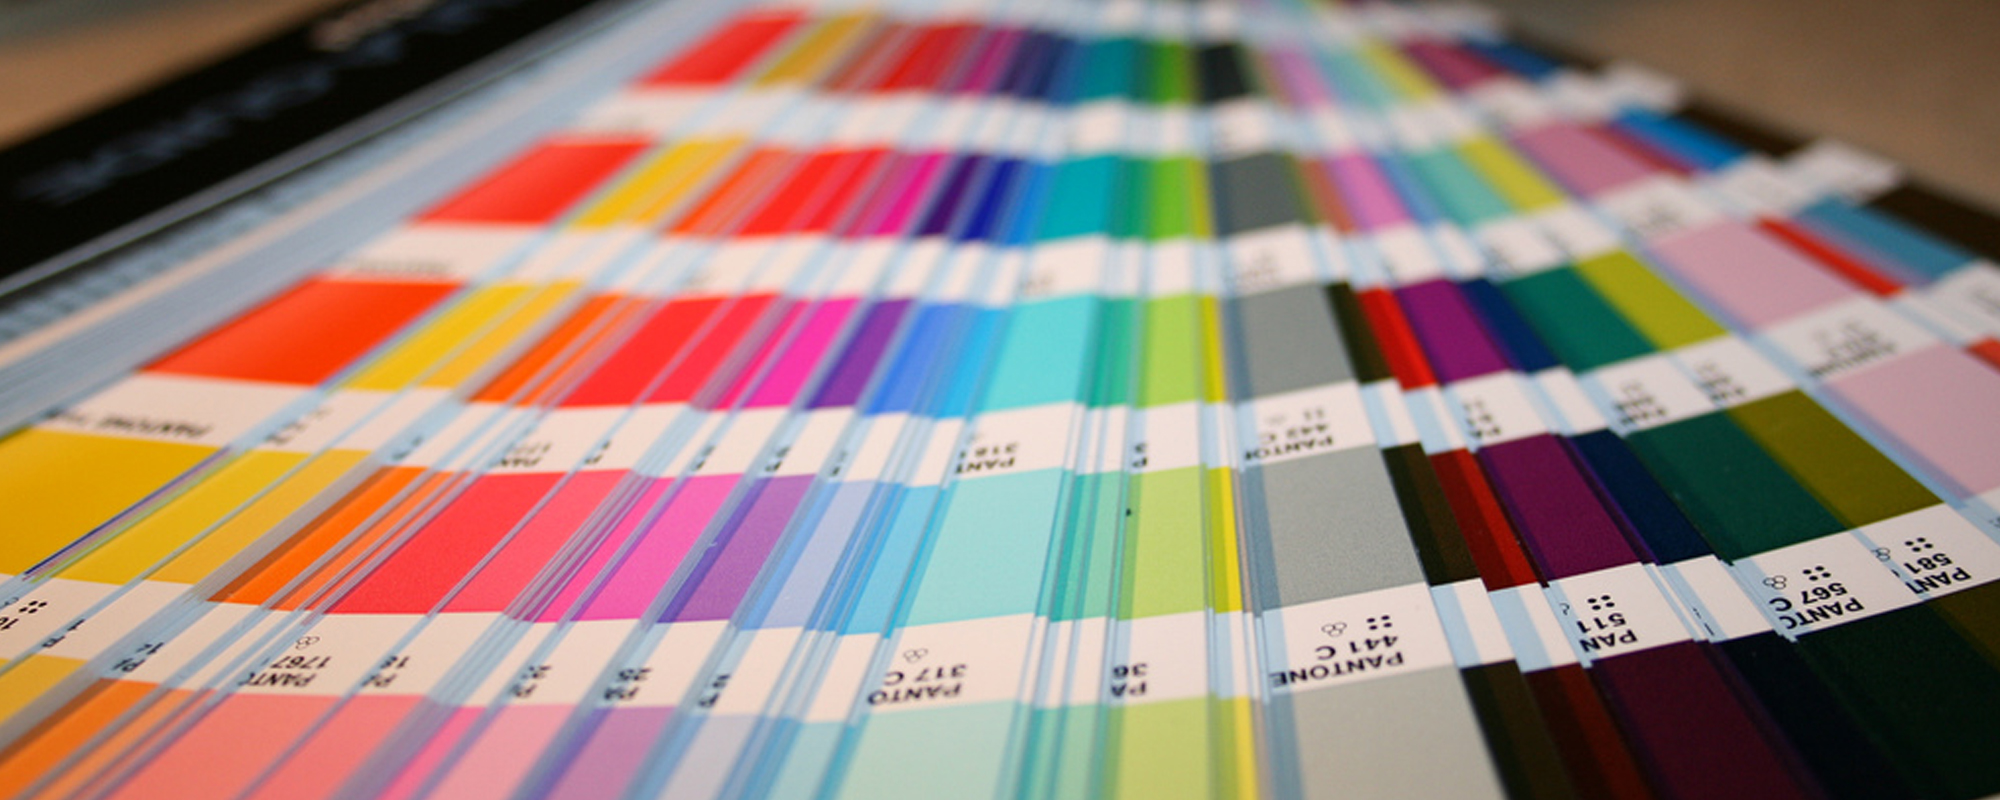 what every marketer needs to know about color modassic marketing - Pantone Color Books